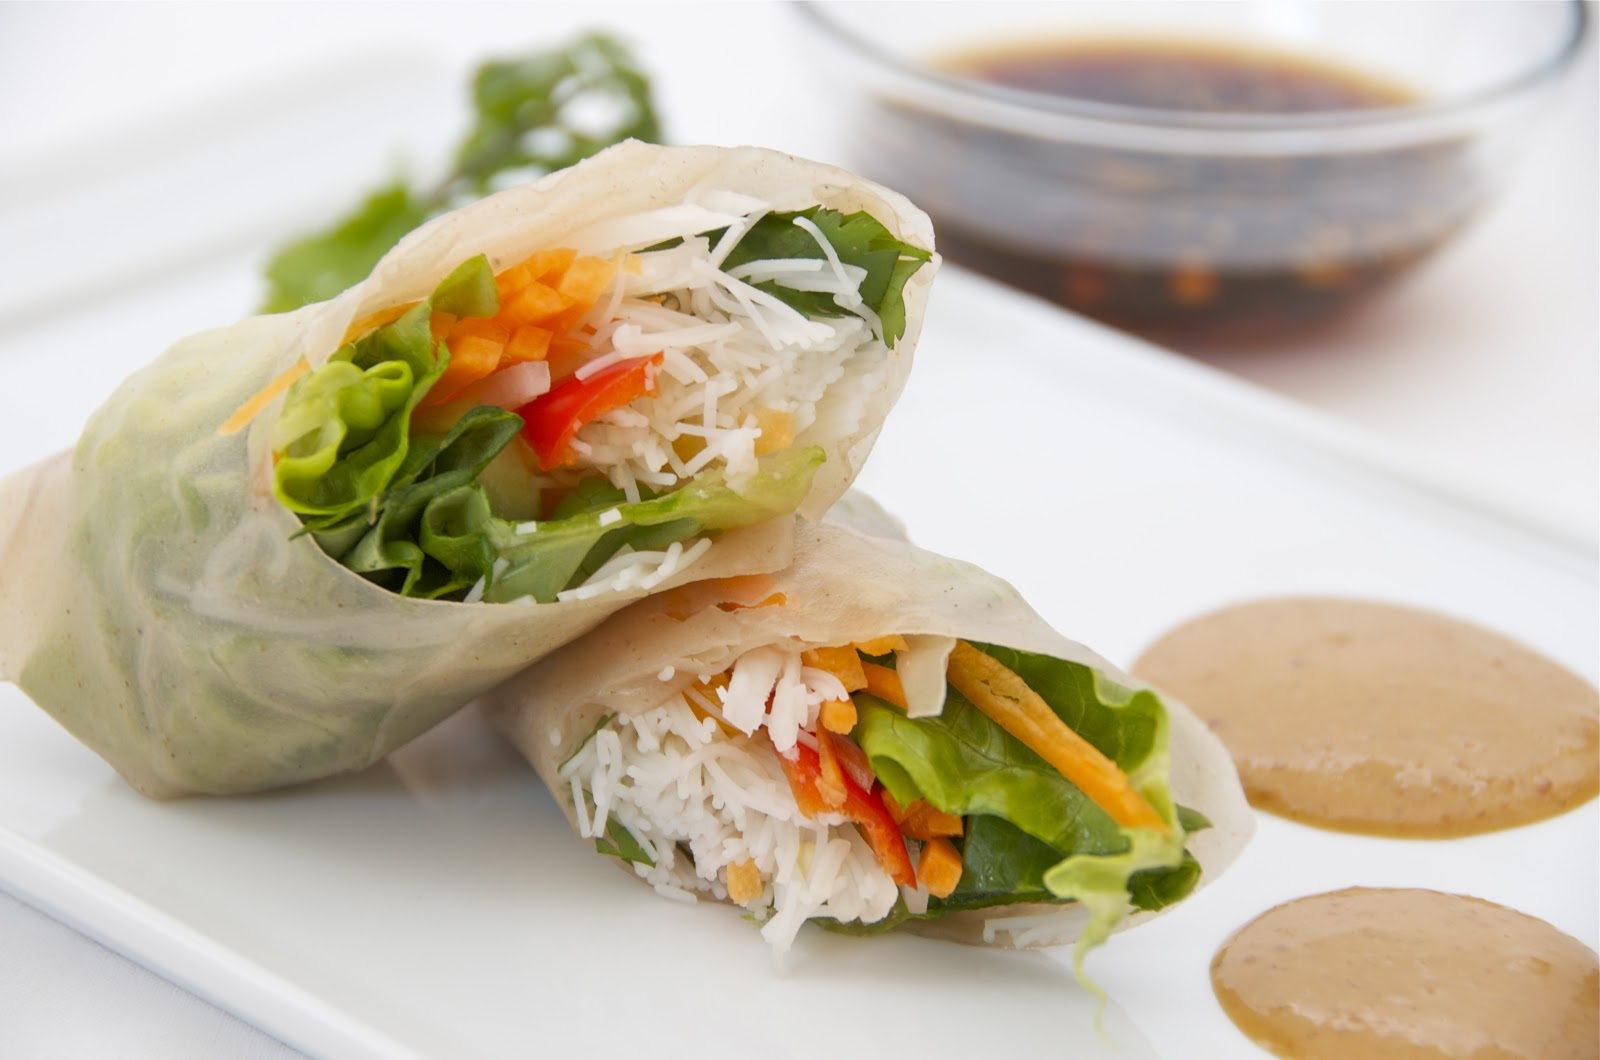 Vegetable Spring Roll Snack (with images, tweet) · Violettewebb ...